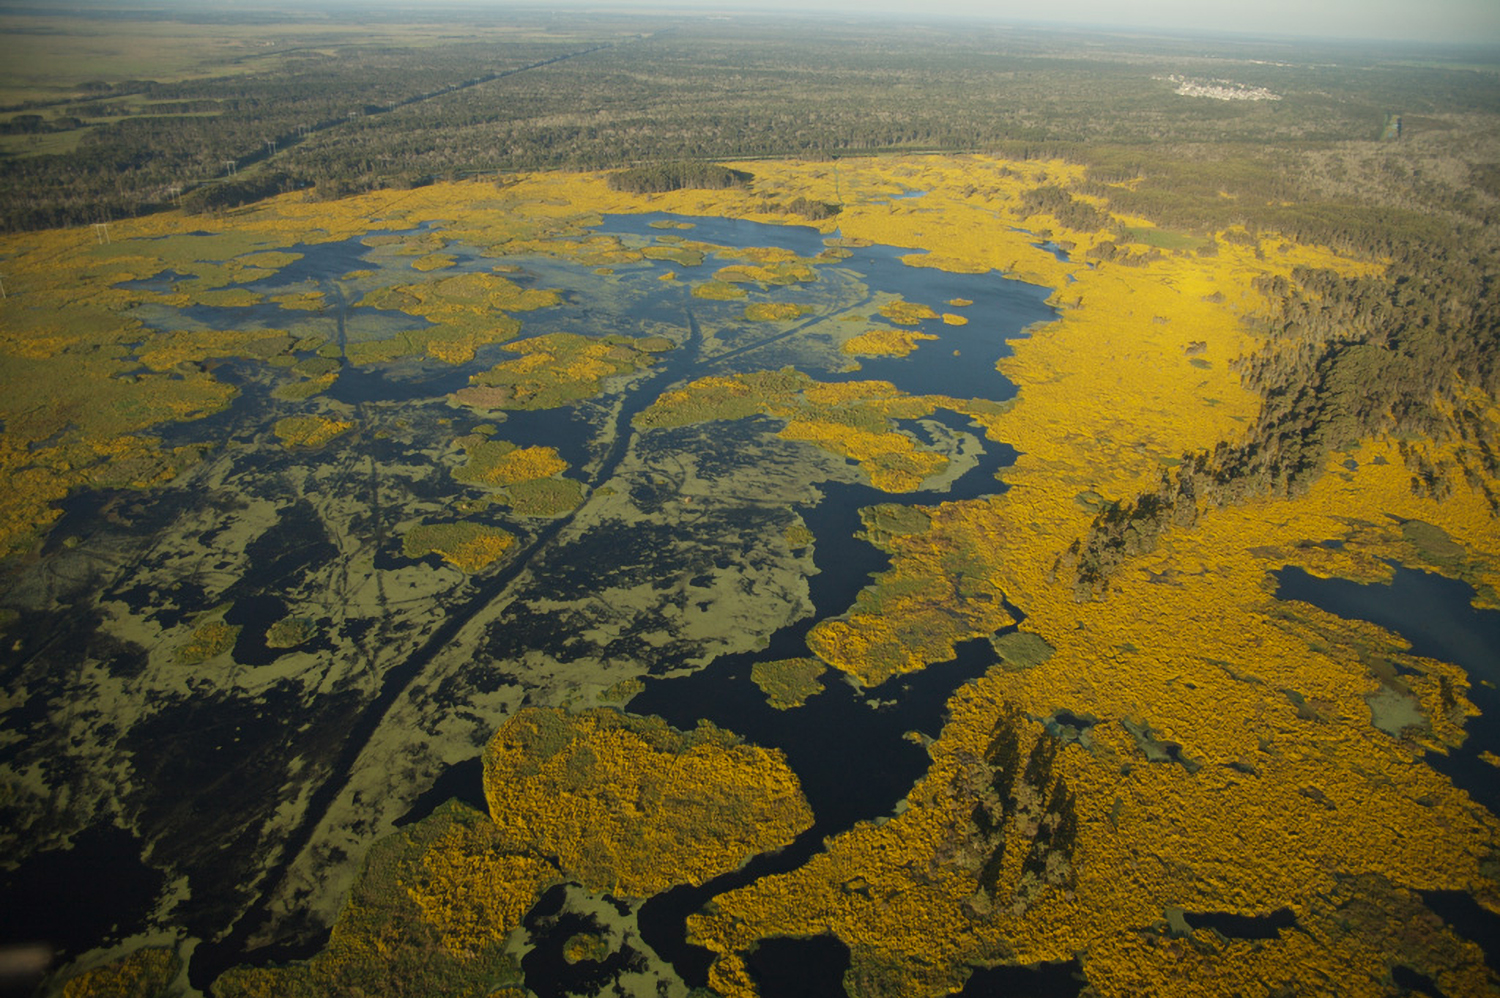 Multiple habitats are seen in an aerial view of the Louisiana coastline.